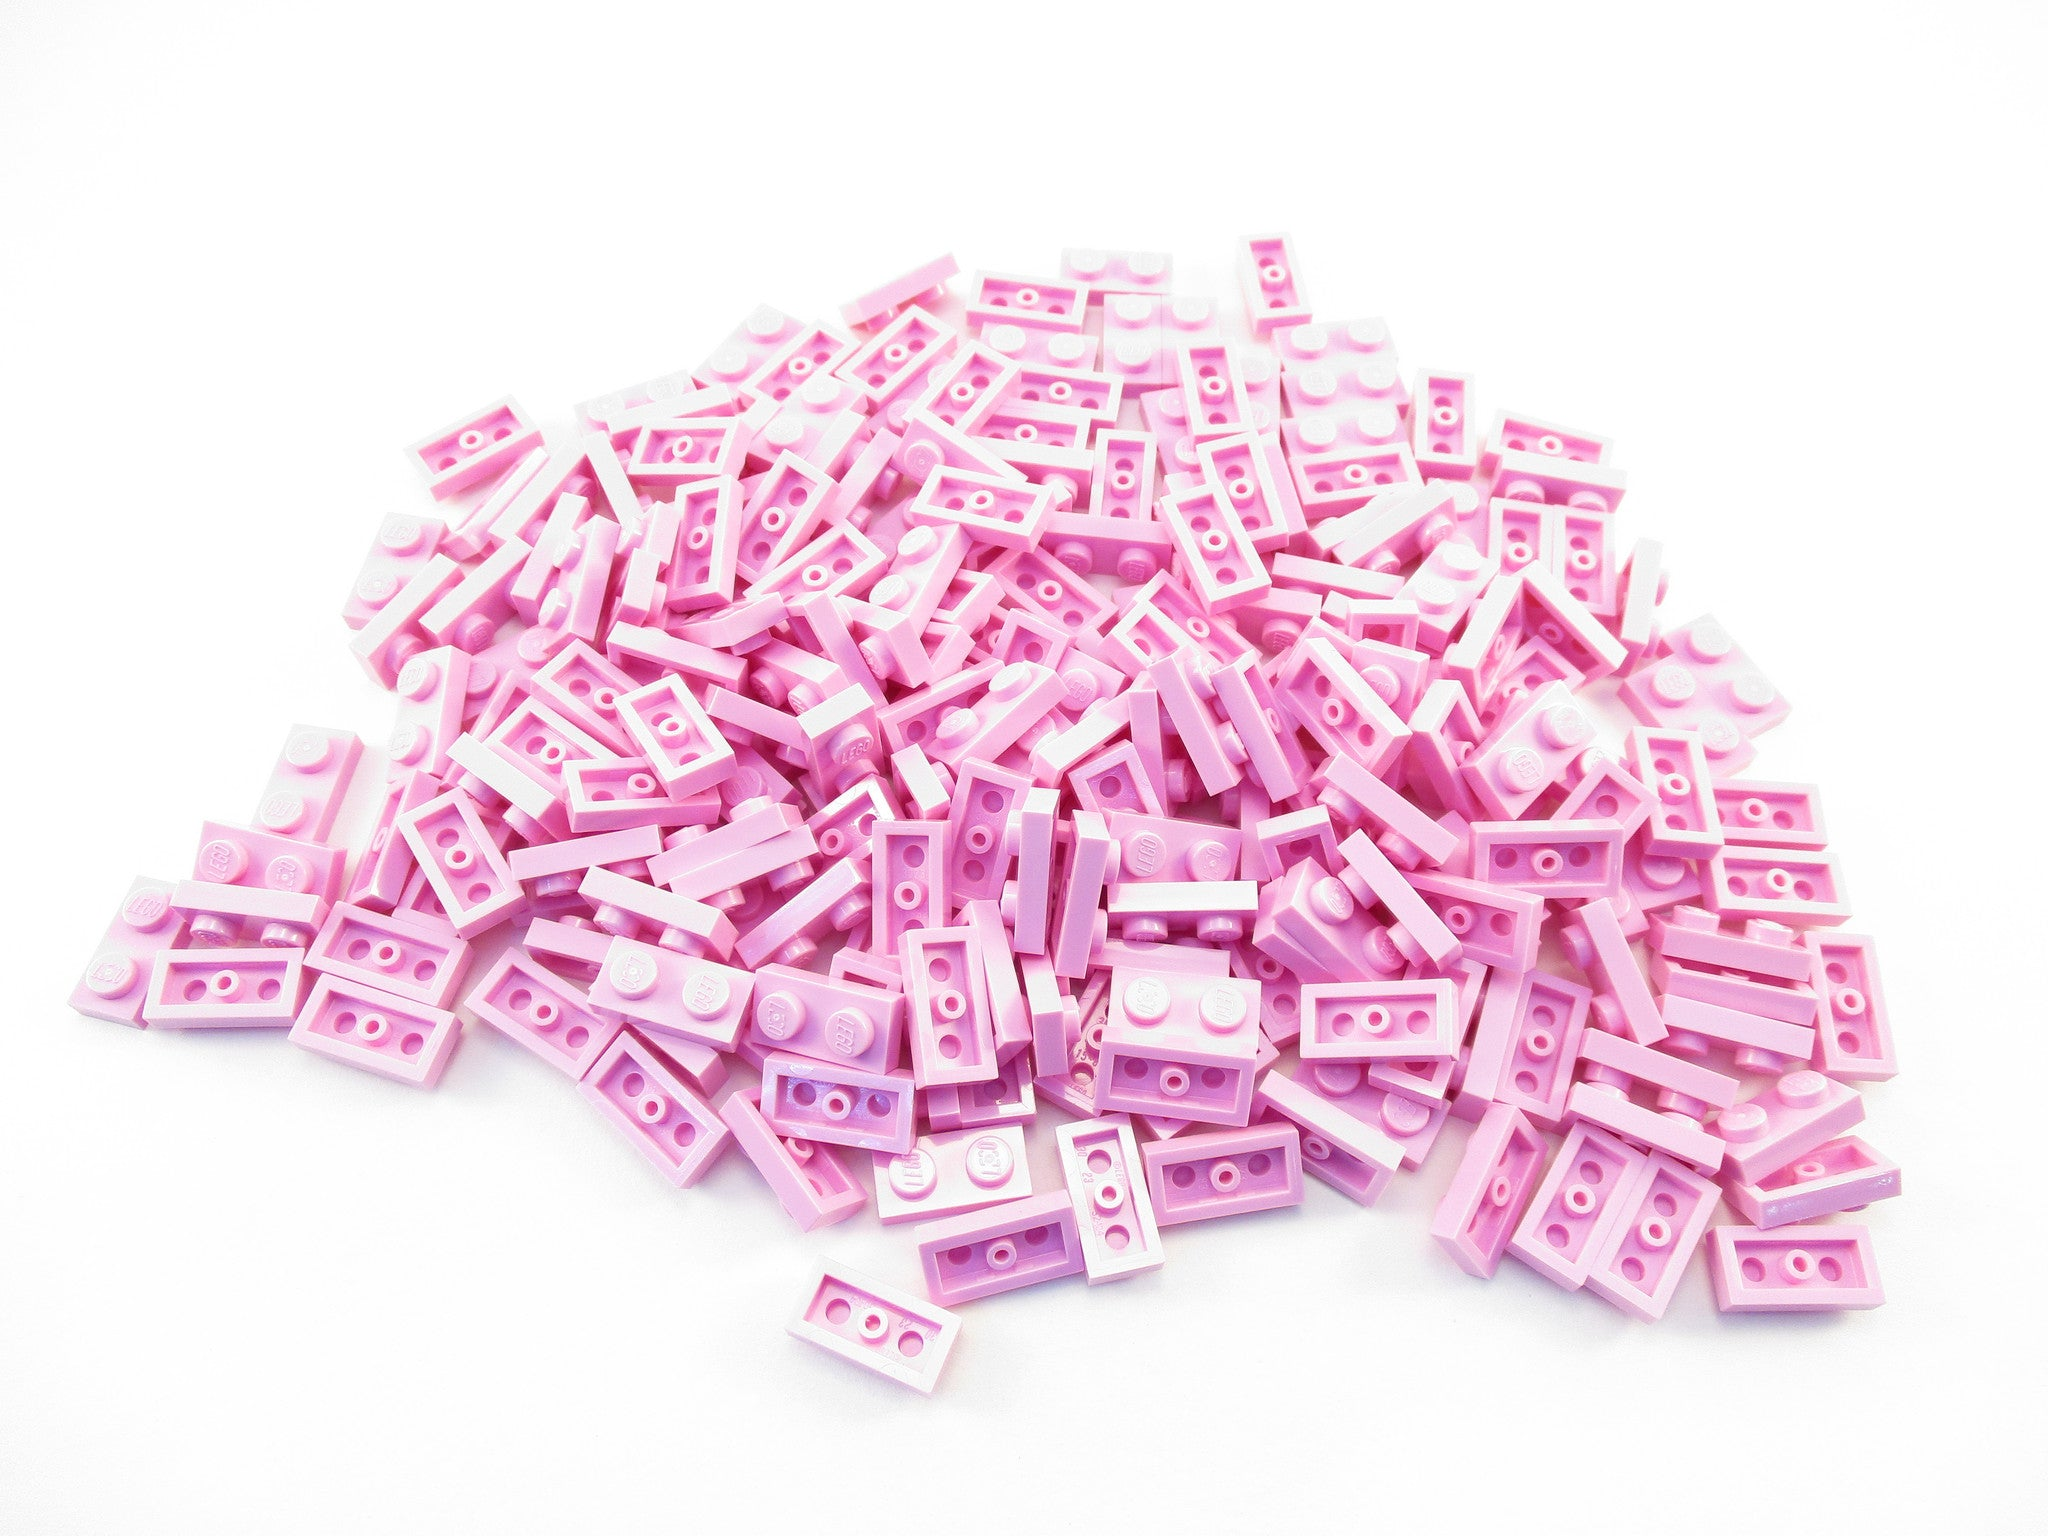 LEGO Bright Pink Plate 1x2 Lot of 100 Parts Pieces 3023